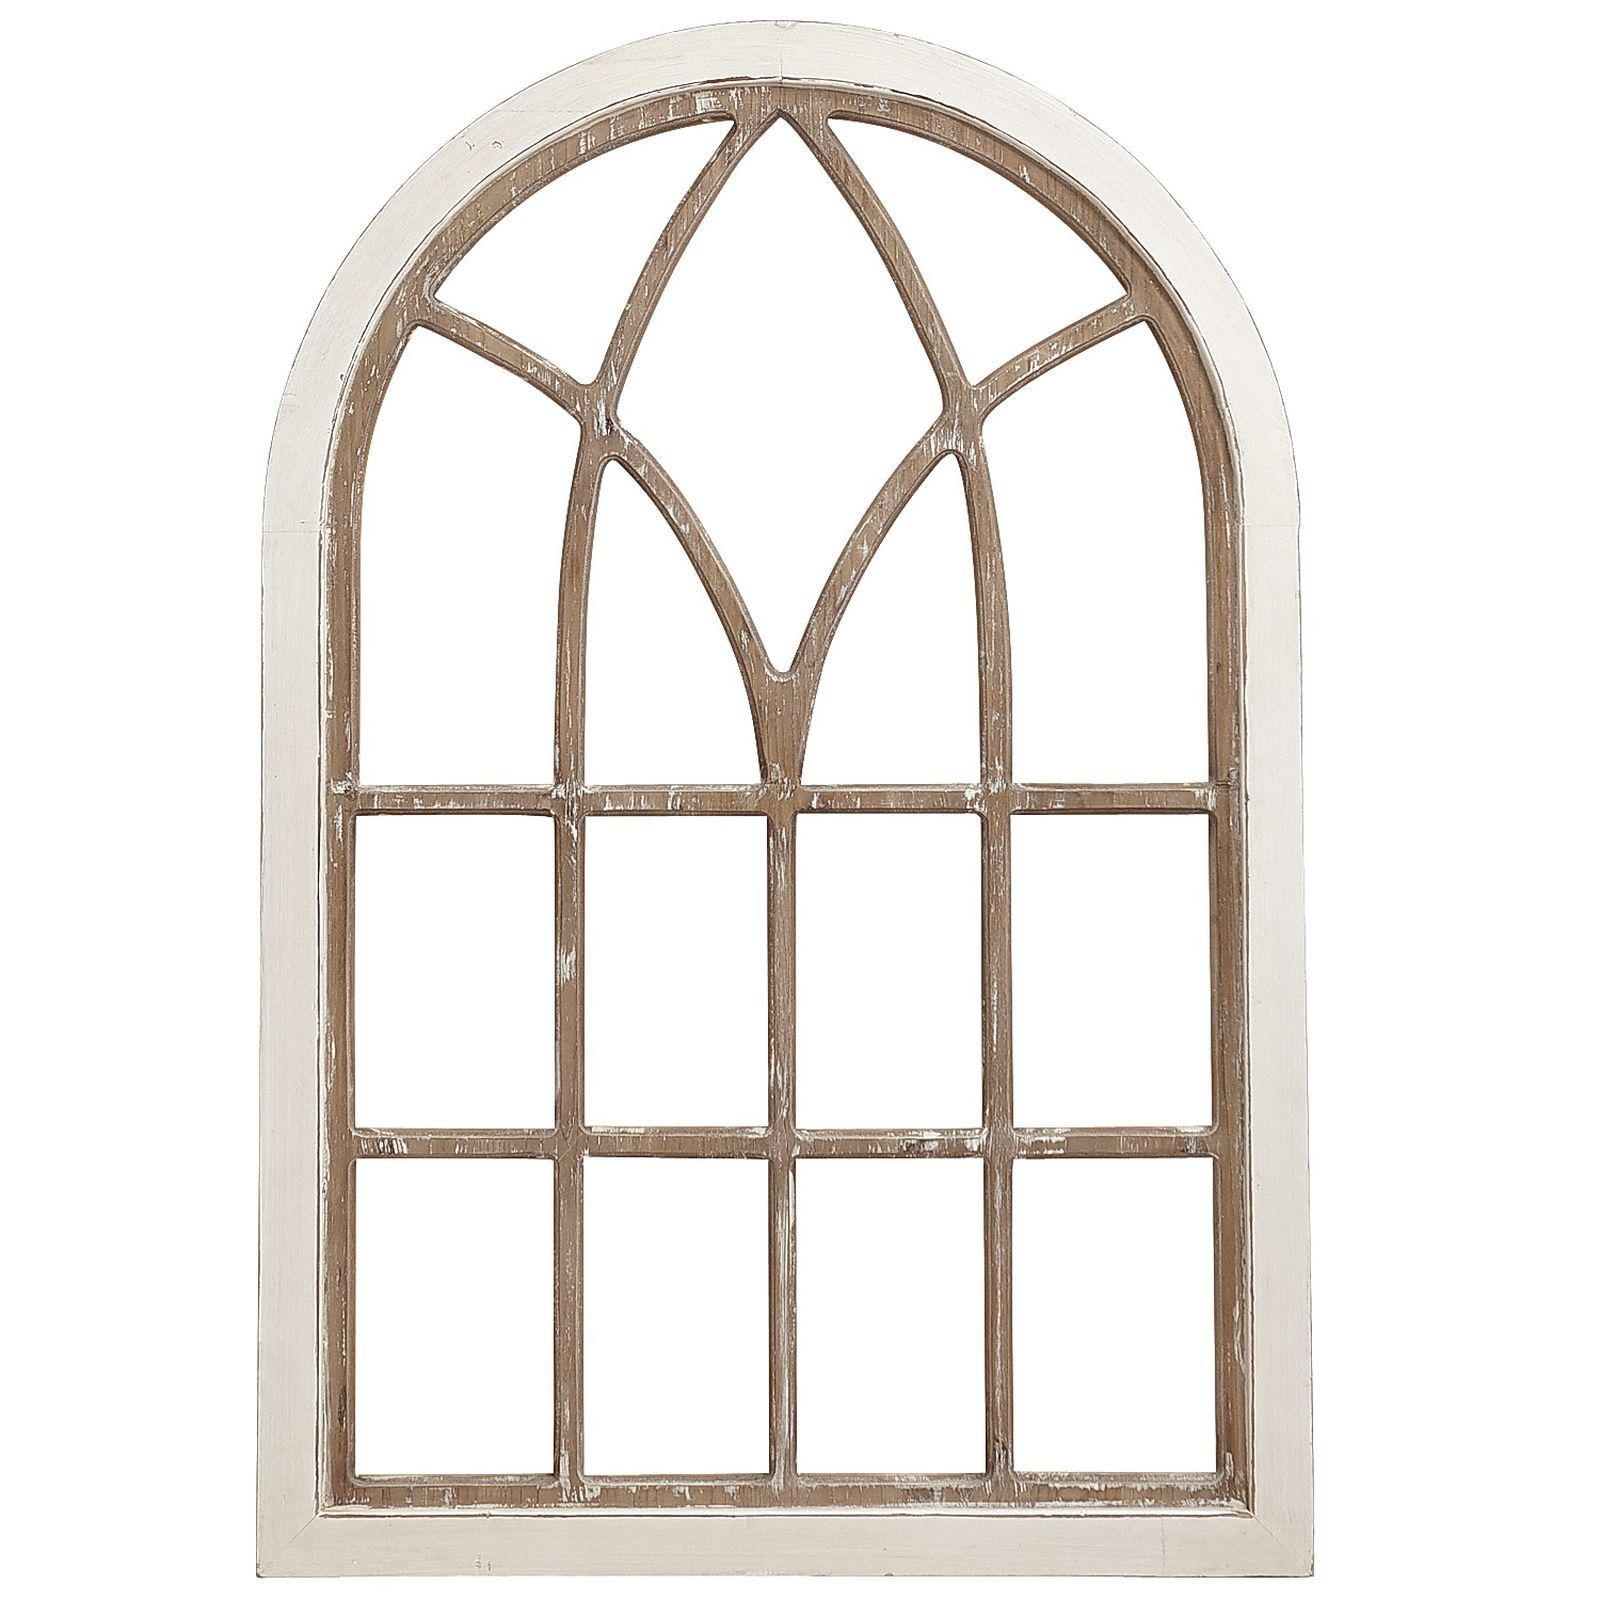 Ivory arch wall decor the oujays furniture and wall decor